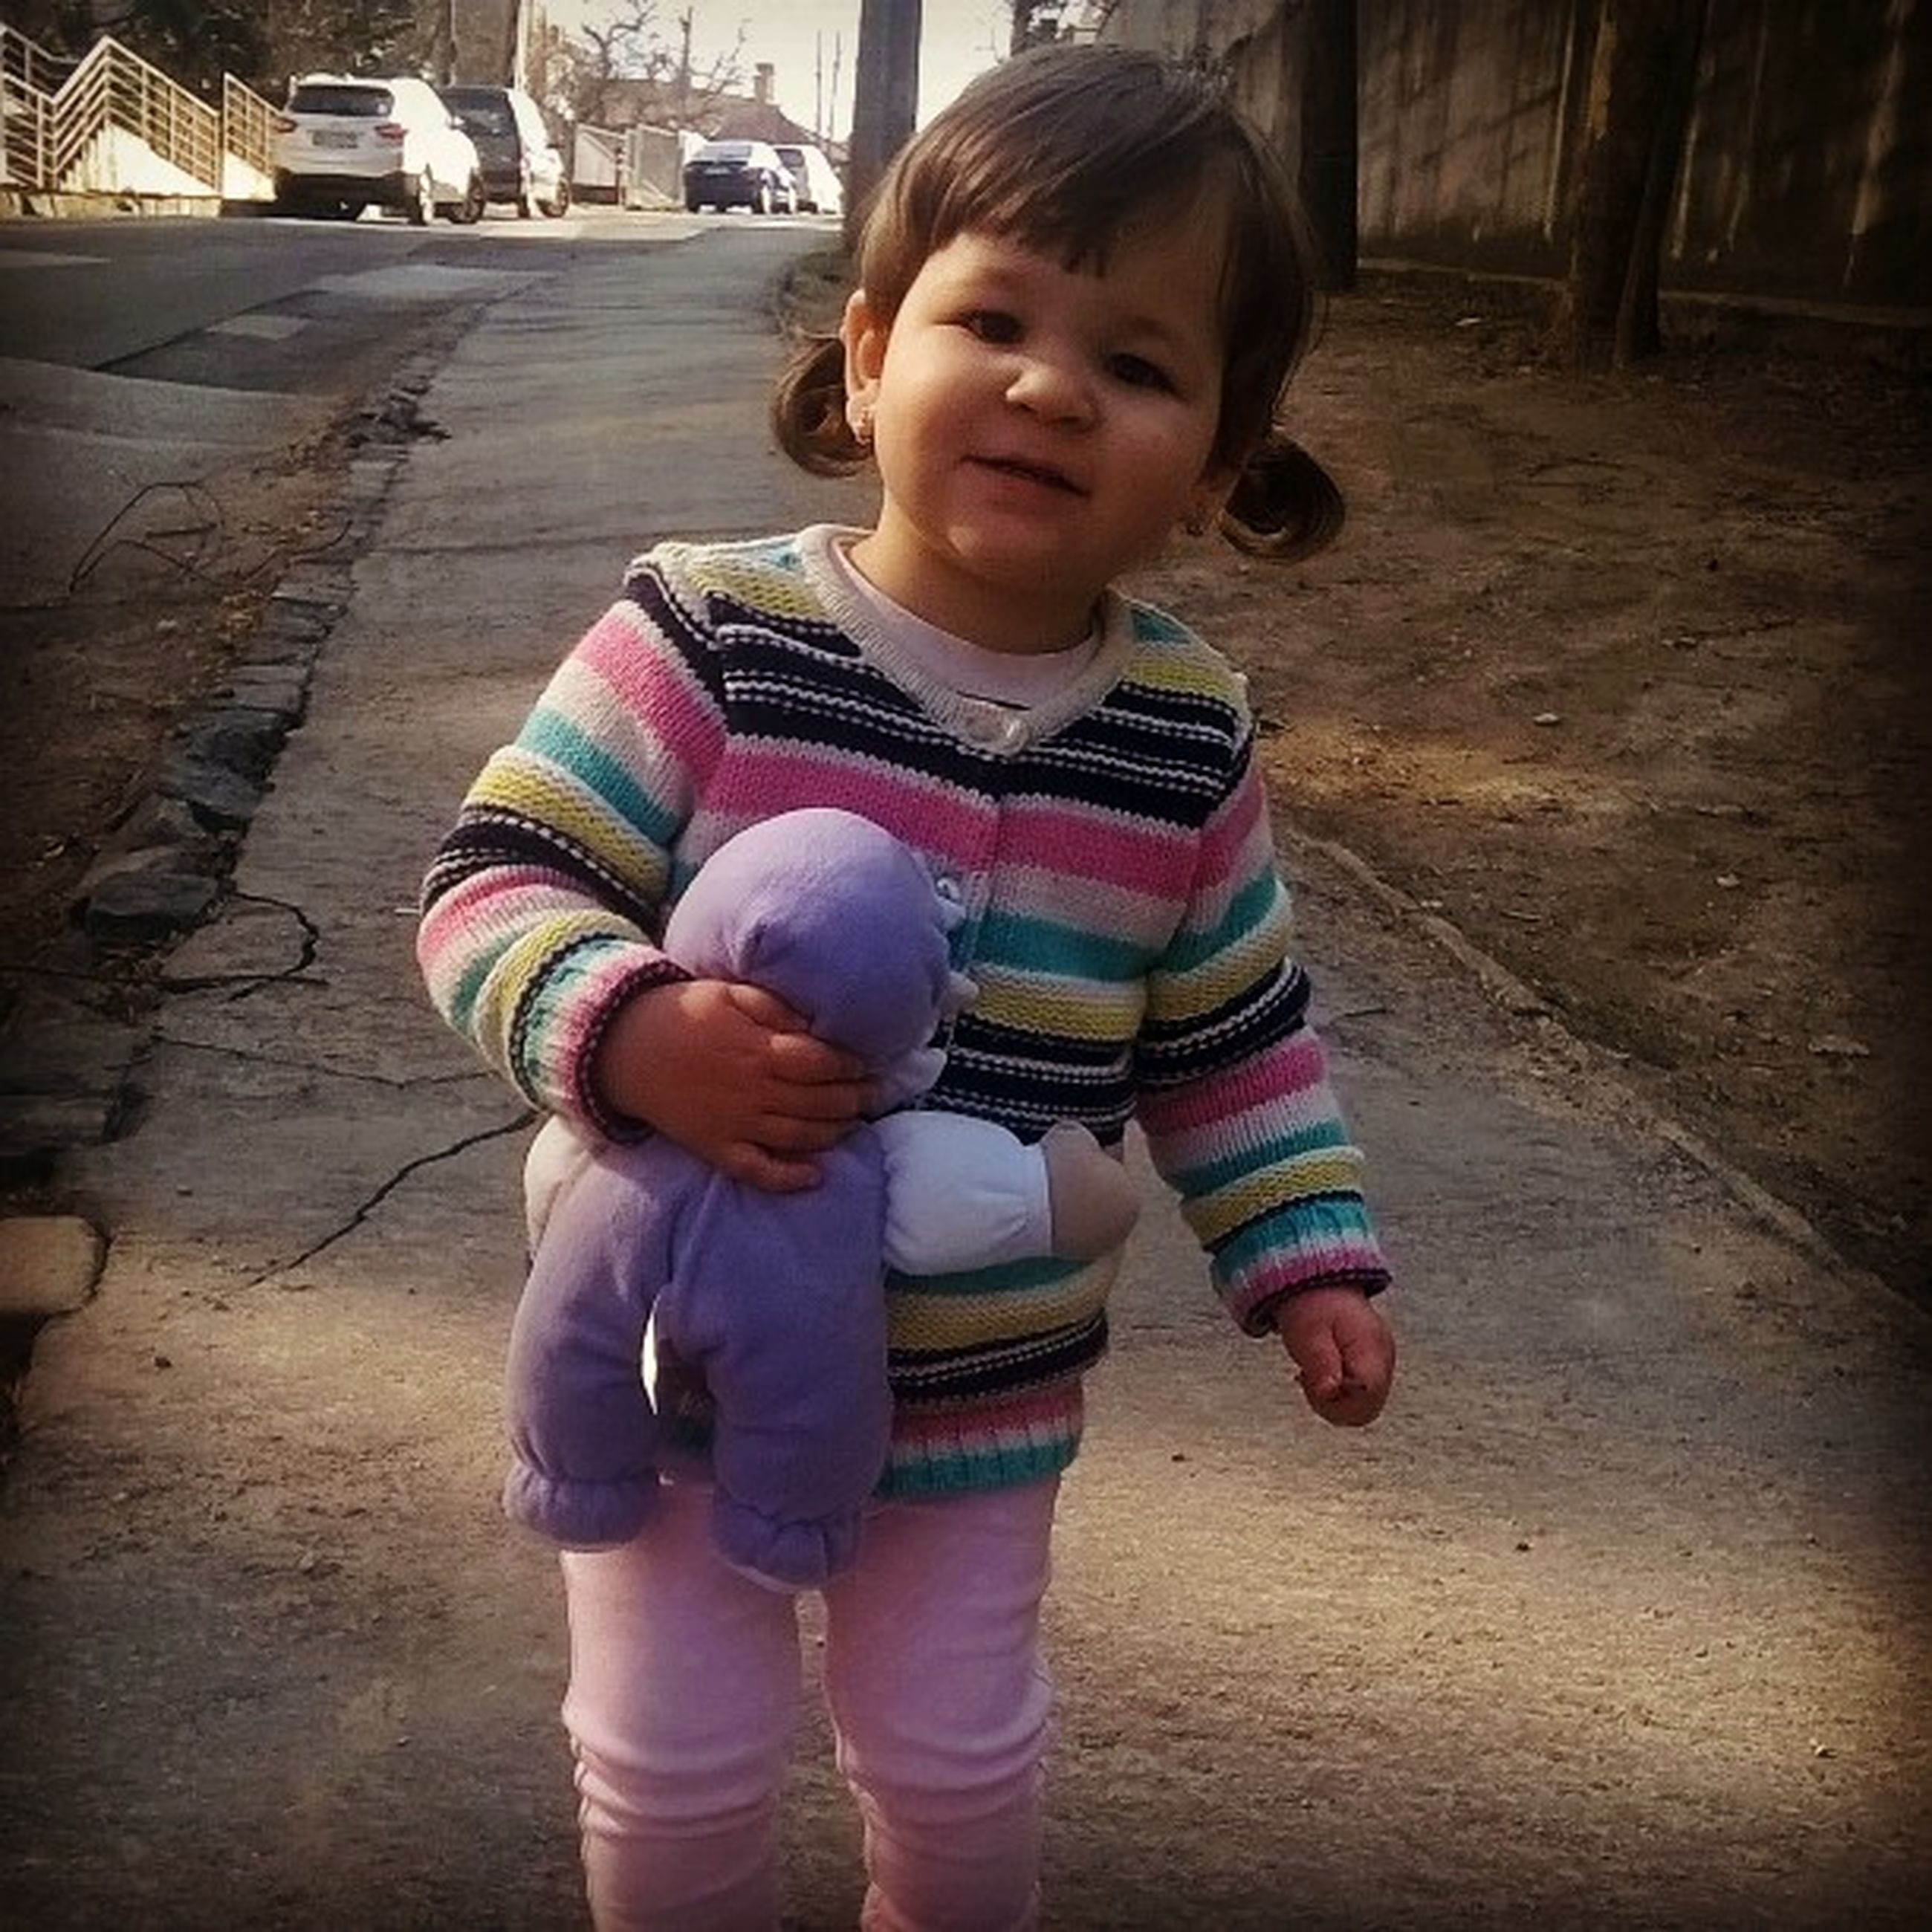 childhood, elementary age, boys, person, innocence, cute, lifestyles, girls, casual clothing, full length, leisure activity, portrait, happiness, looking at camera, front view, preschool age, smiling, togetherness